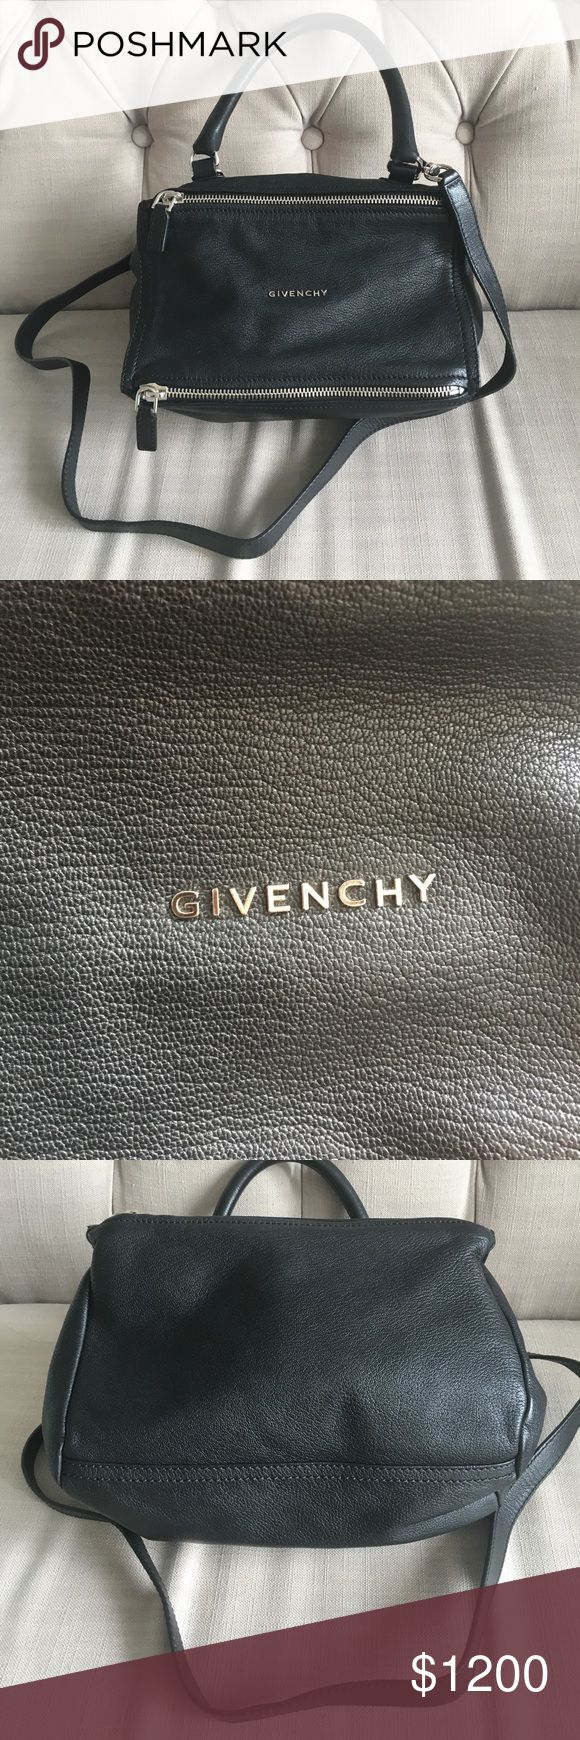 """Givenchy Pandora Black Leather Small Excellent condition! Small size Givenchy Pandora in black leather. Inside is clean and outside is in pristine condition. The """"H"""" has become slightly crooked from use but it's hard to tell. Comes with original strap (pretty long, not adjustable). Sorry, no box or dustbag. No trades. Send offers! NO FAKES. Givenchy Bags Satchels"""